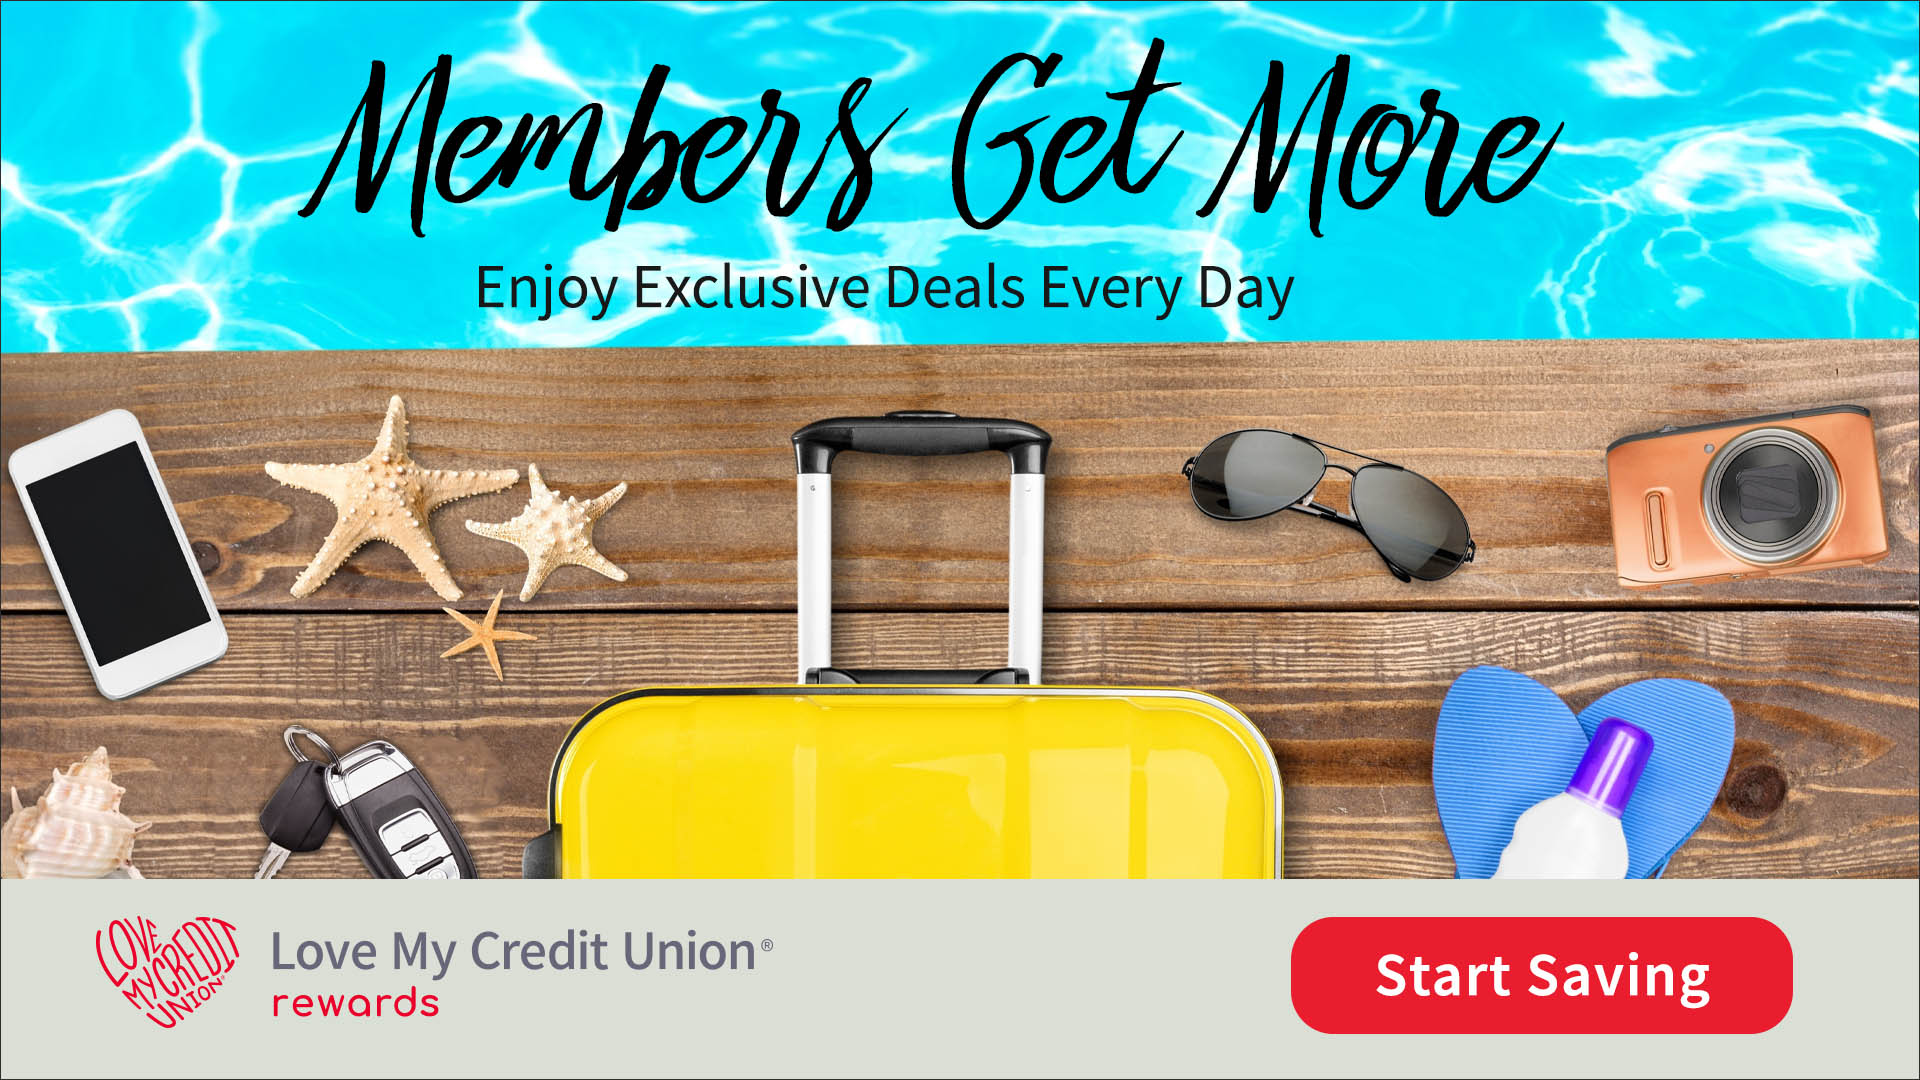 Enjoy exclusive savings every day with Love My Credit Union. Discounts are available with Sprint, Turbo Tax, ADT, Trustage and Love to Shop